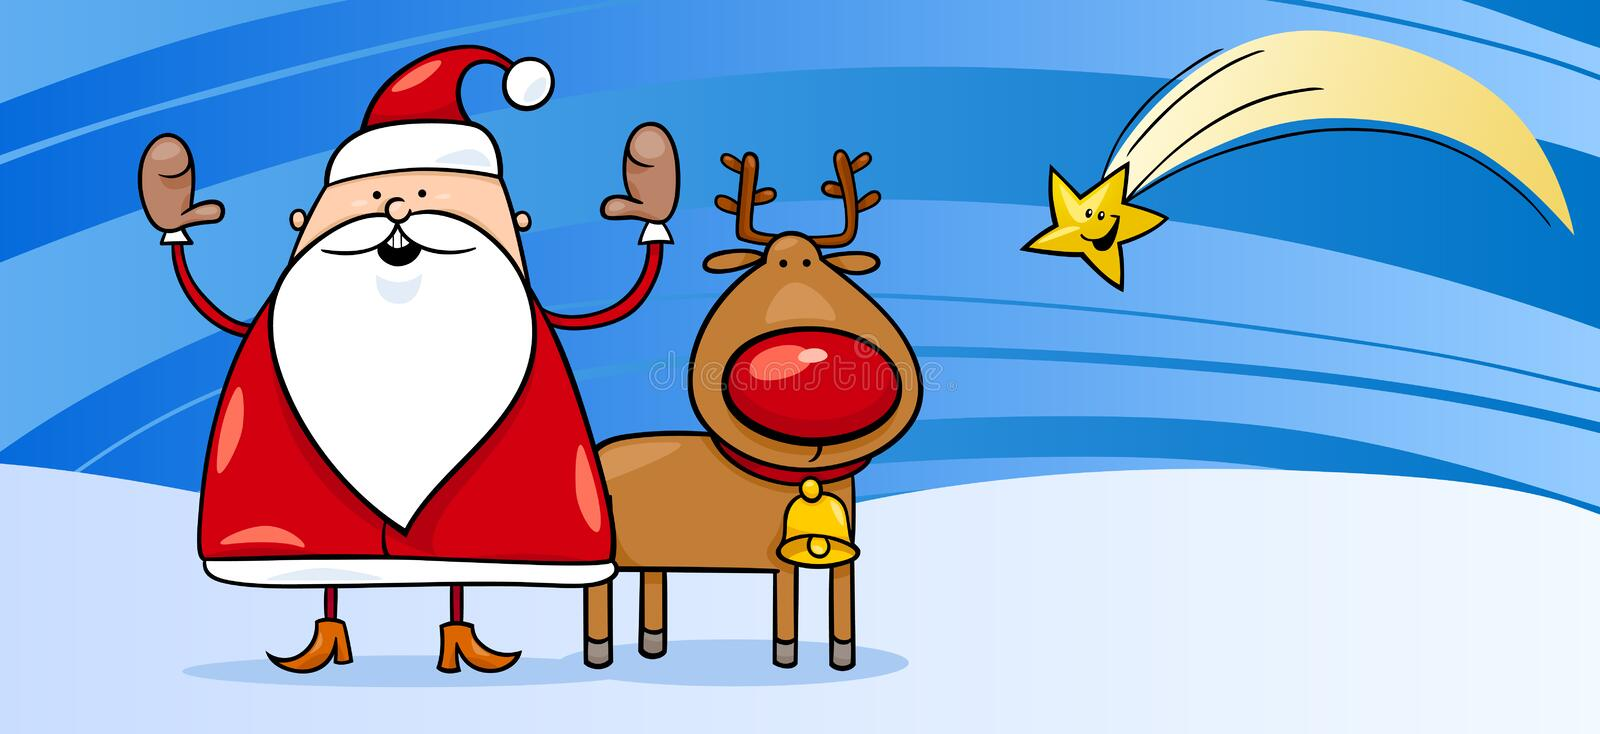 Santa claus with reindeer greeting card stock vector